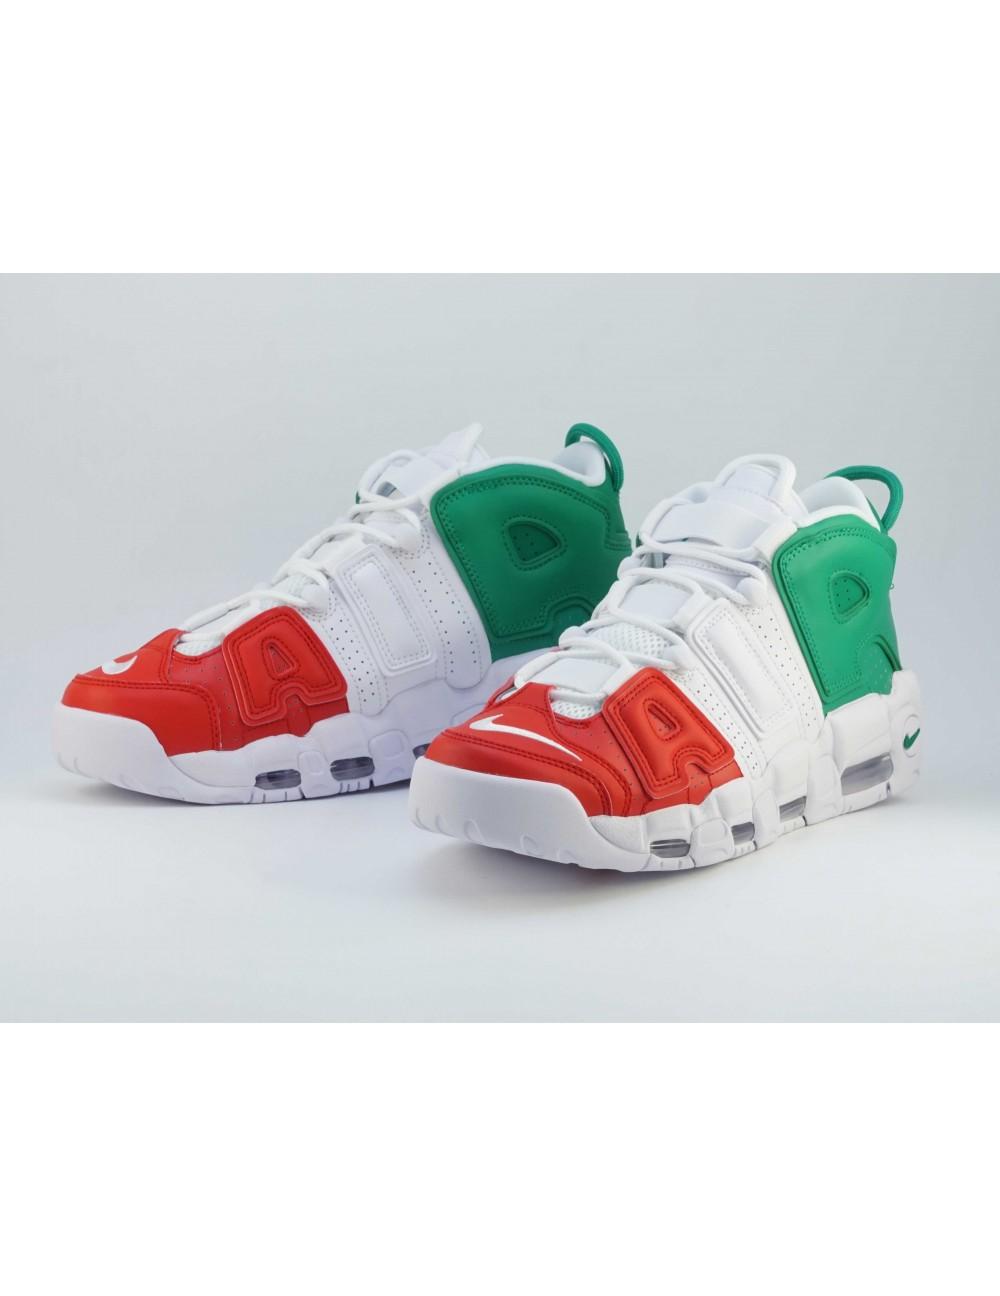 NIKE AIR MORE UPTEMPO `96 ITALY QS